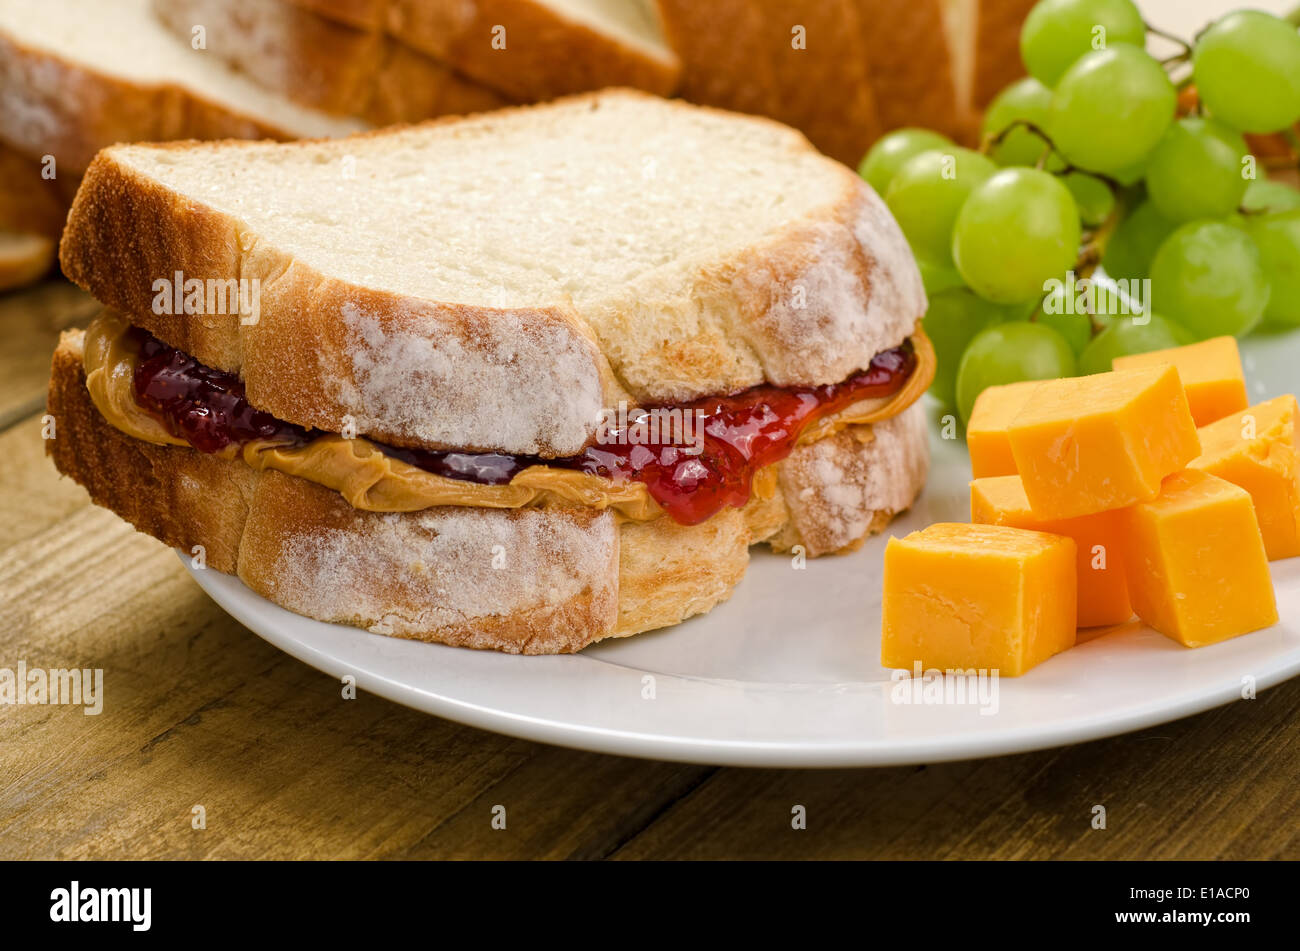 A nutritious peanut butter and jelly sandwich with cheddar cheese and grapes. - Stock Image